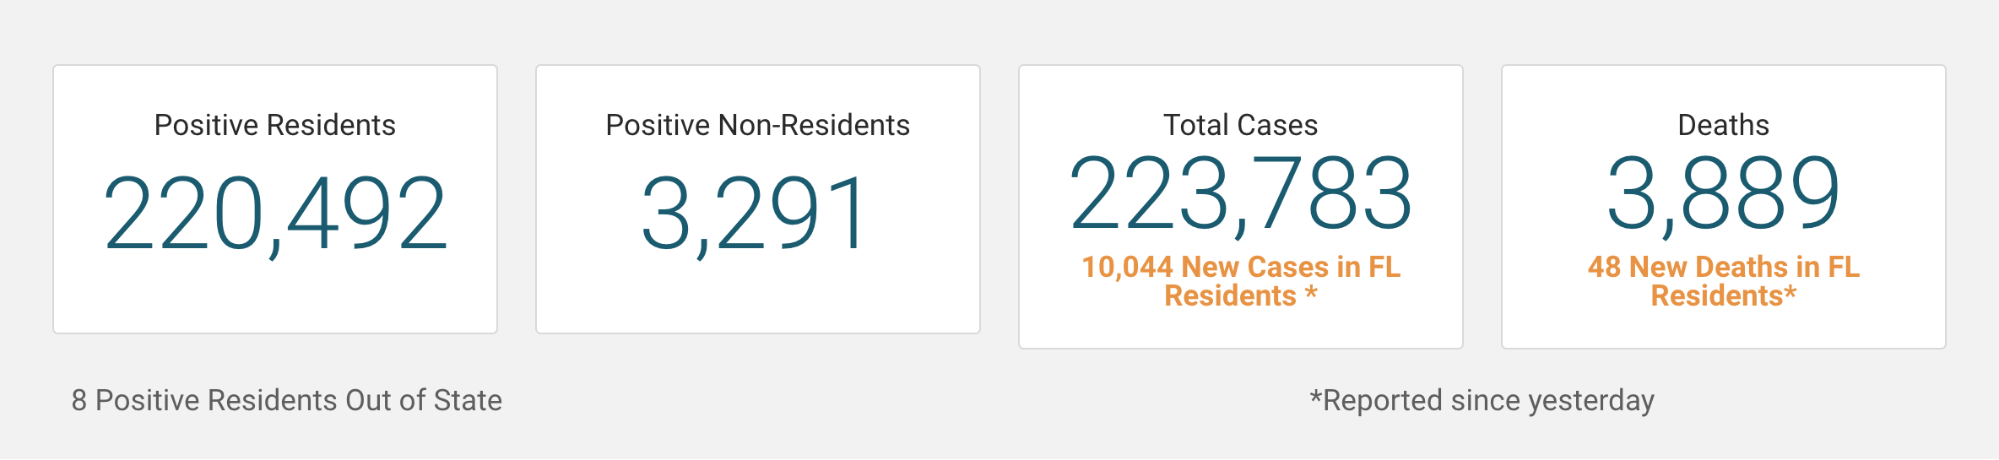 Screenshot of Florida's topline data display on their COVID-19 website, showing case and death counts that include non-residents, and resident cases and deaths as footnotes.